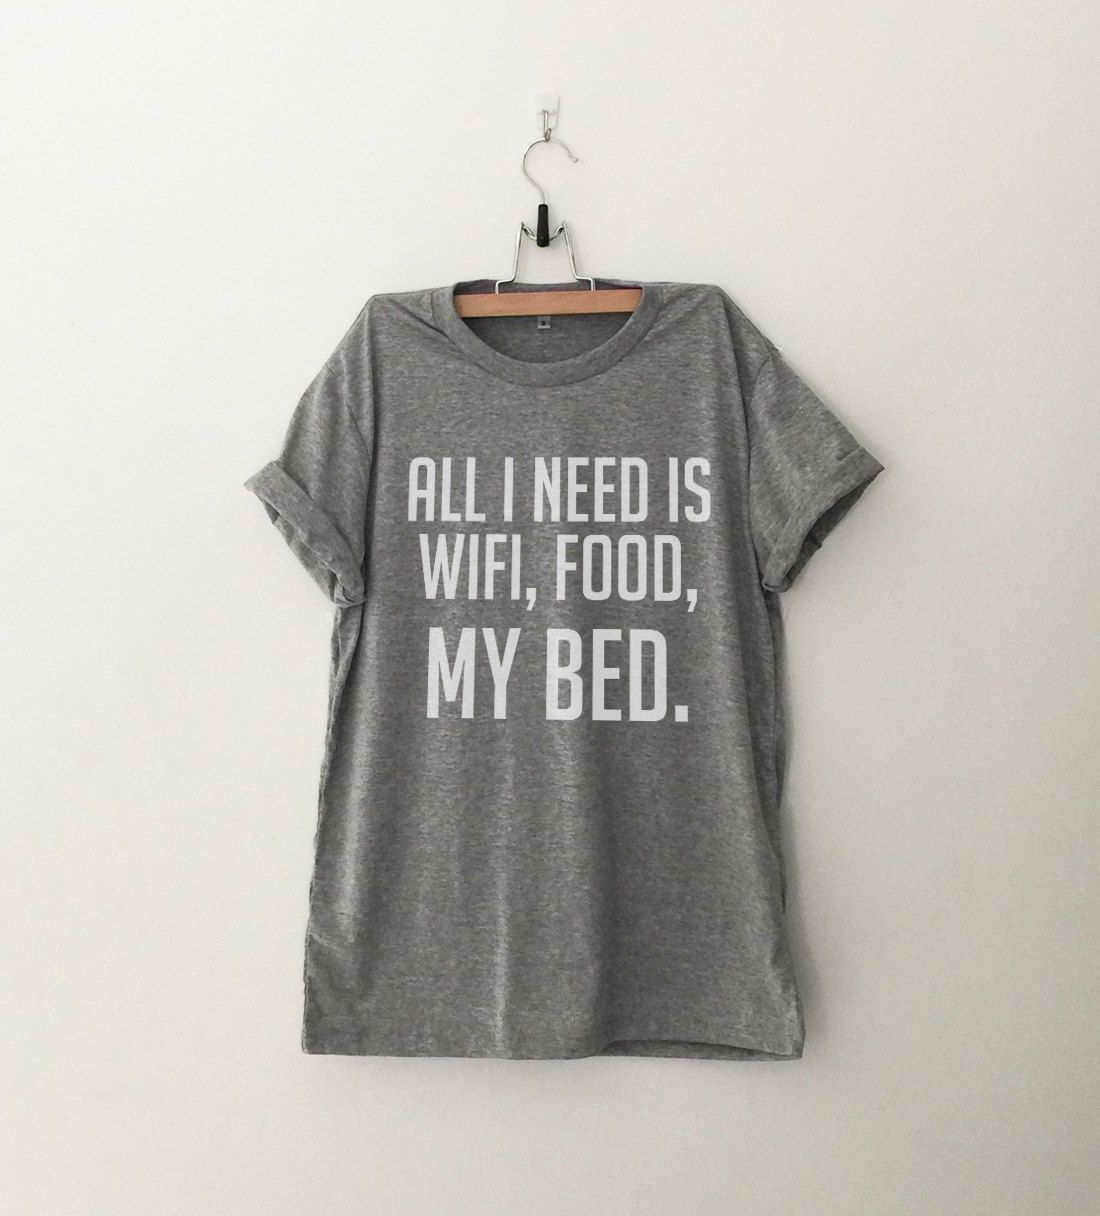 All I need is wifi, food, my bed TShirt womens gifts womens girls tumblr band merch fangirls teens girl gift girlfriends daughters present is part of Party Clothes Casual - CozyGal section id 17666110 ►Payment Payment accept only PAYPAL ►Shipping To Shipping to your ETSY Address, Please make sure your address is updated  ►Shipping From Shipping from Thailand ►Processing Times Order will be Shipping within 35 Business days